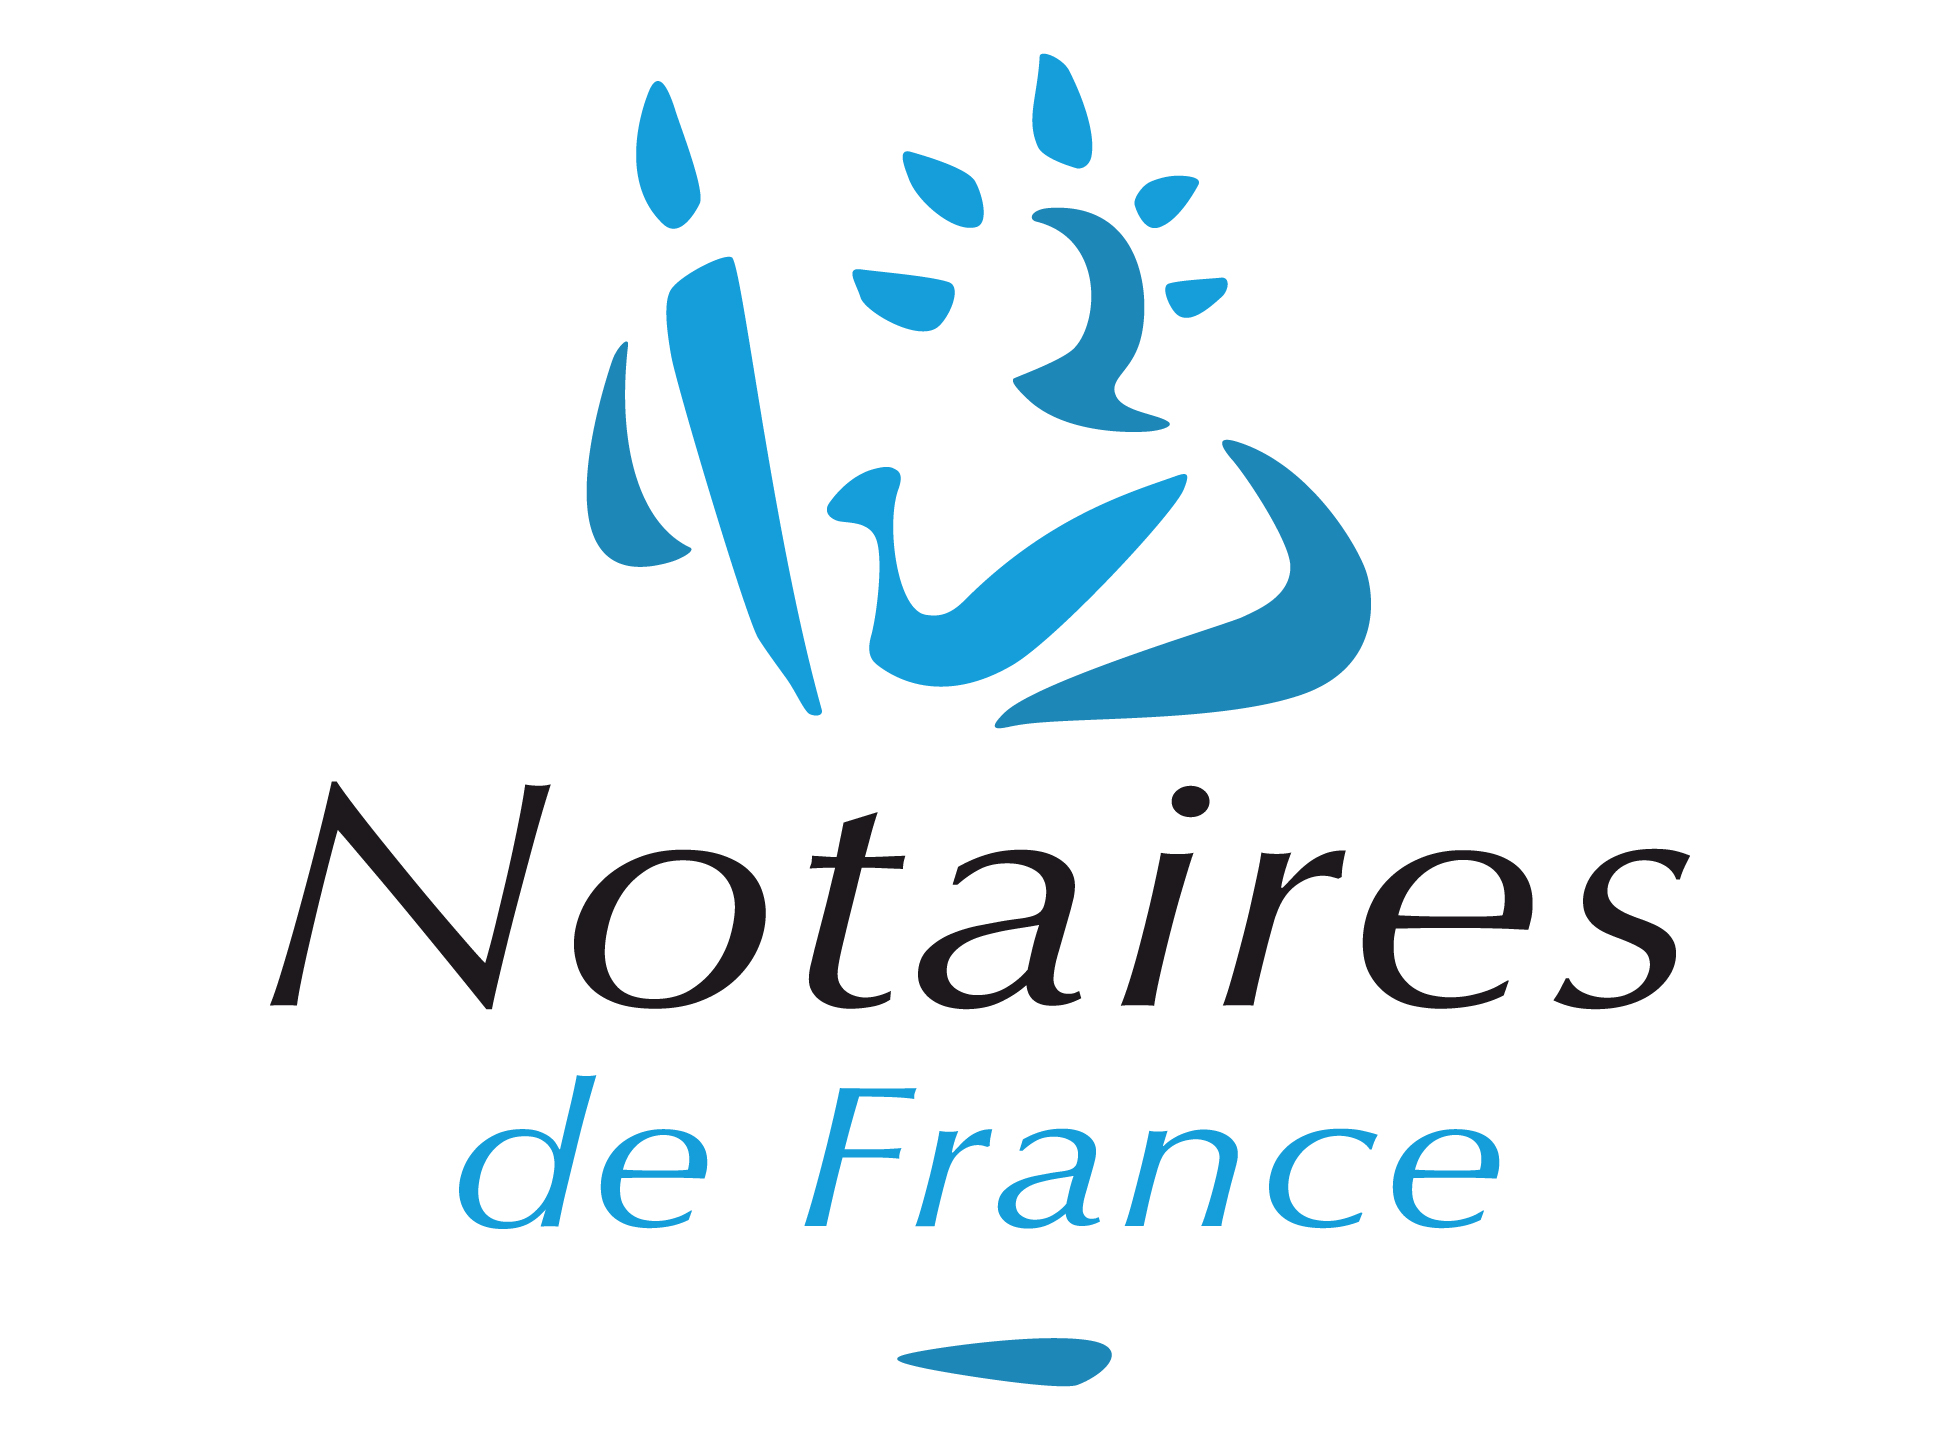 image logo notaire